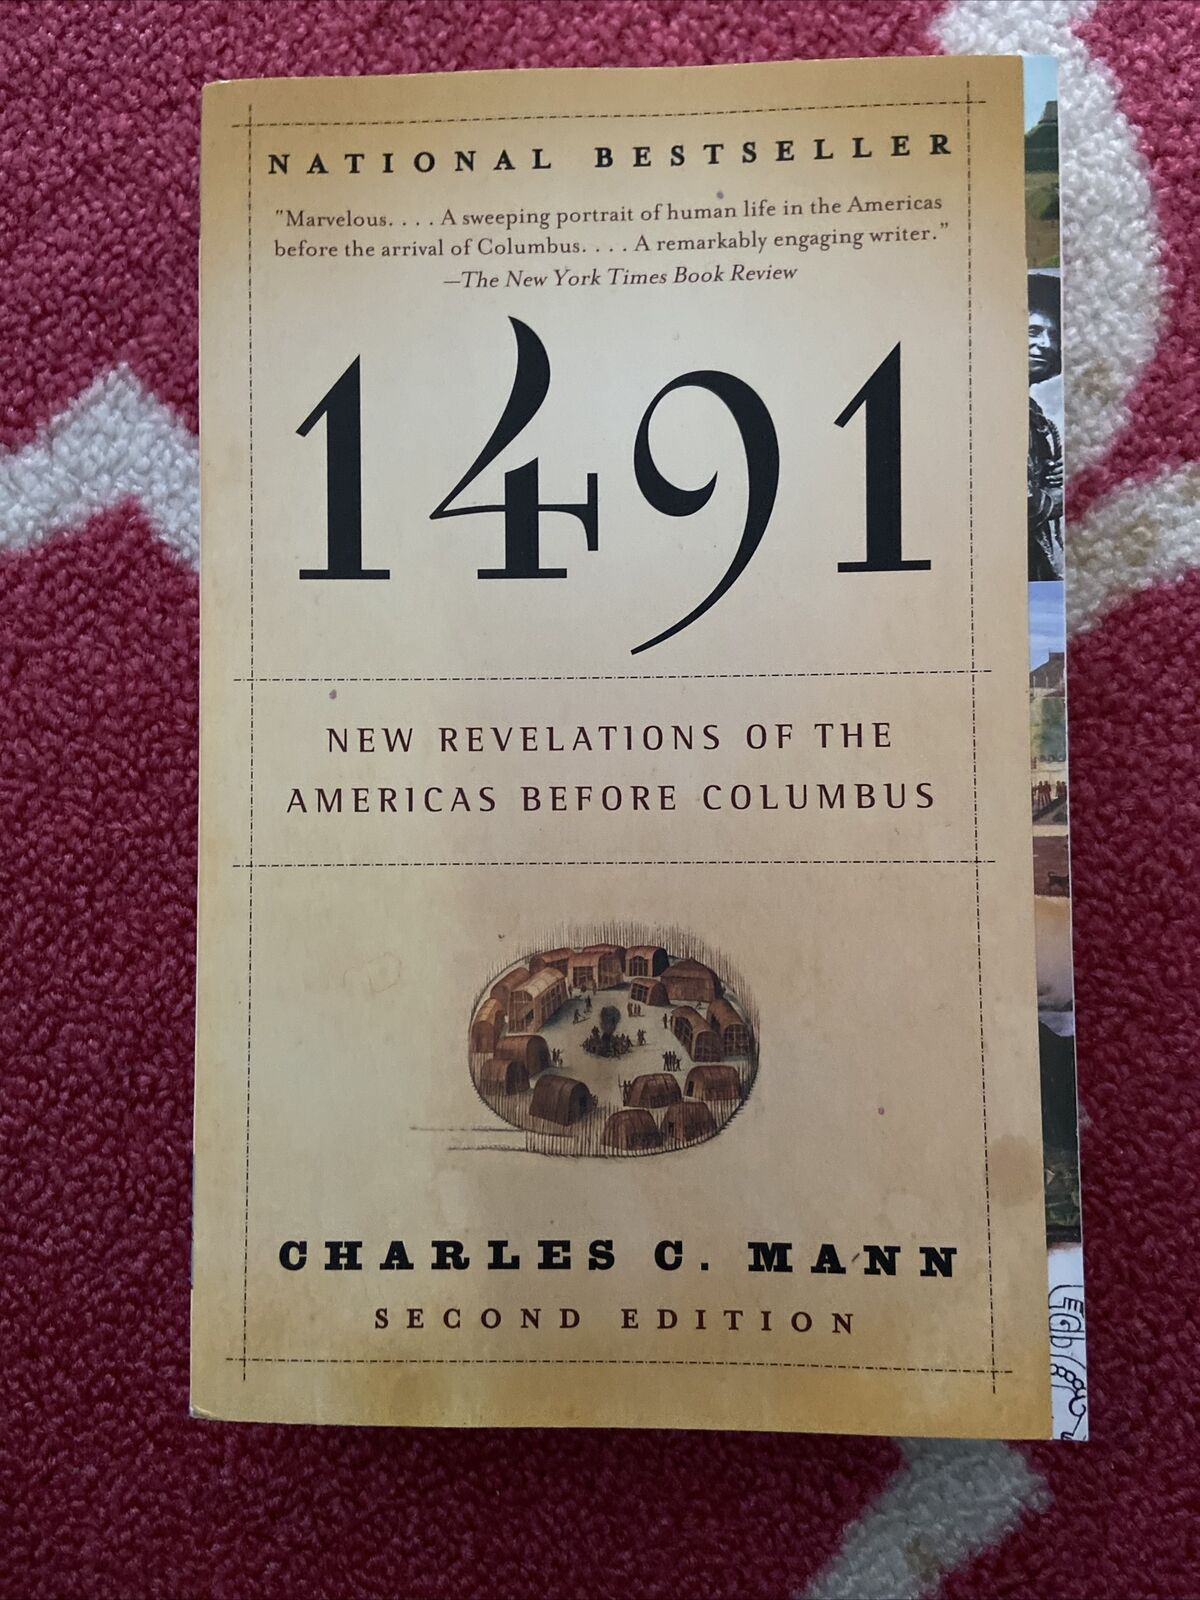 1491 by Charles C. Mann Paperback |